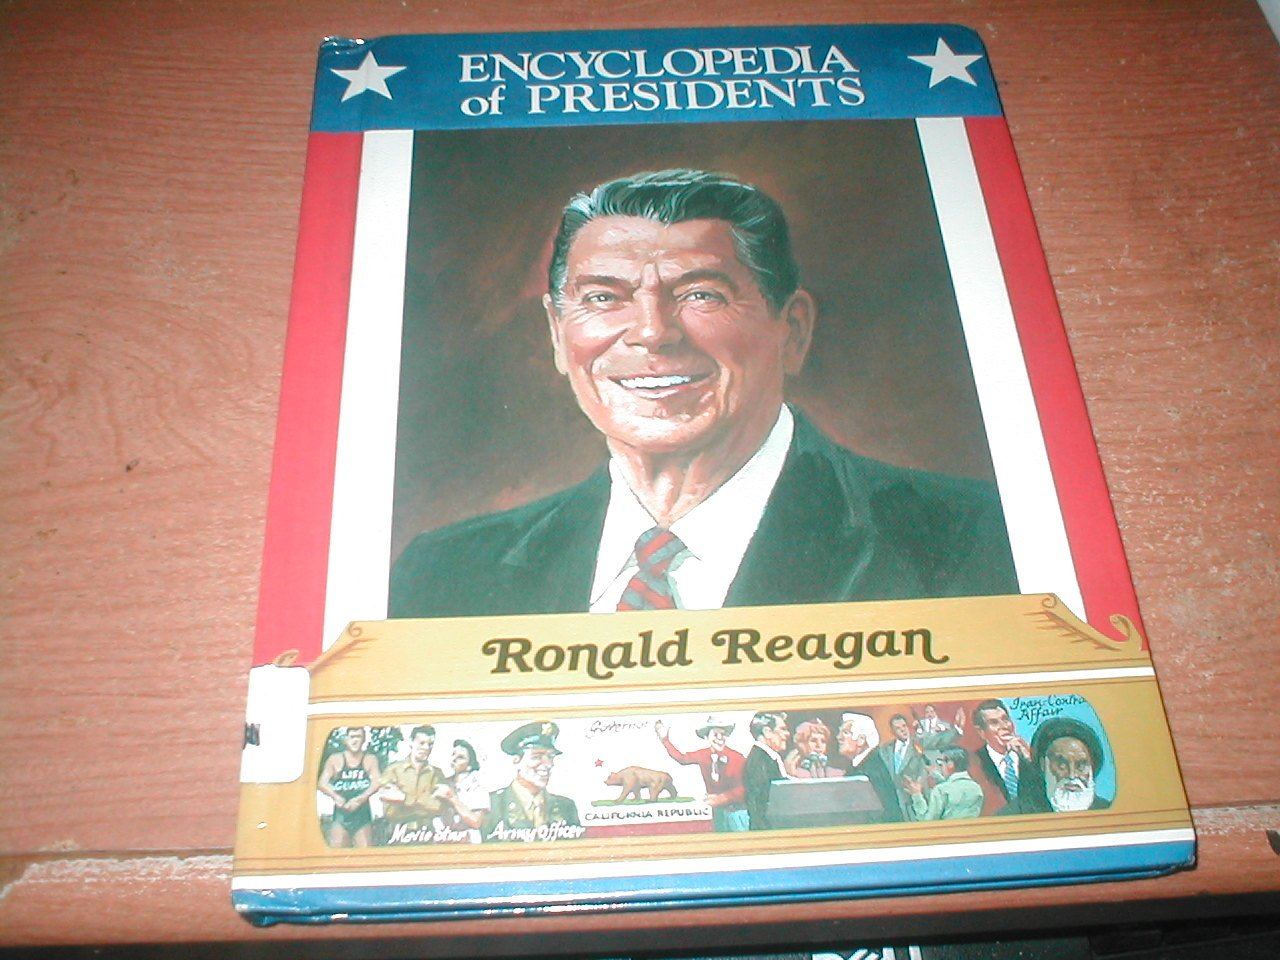 Ronald Reagan: Fortieth President of the United States (Encyclopedia of Presidents)